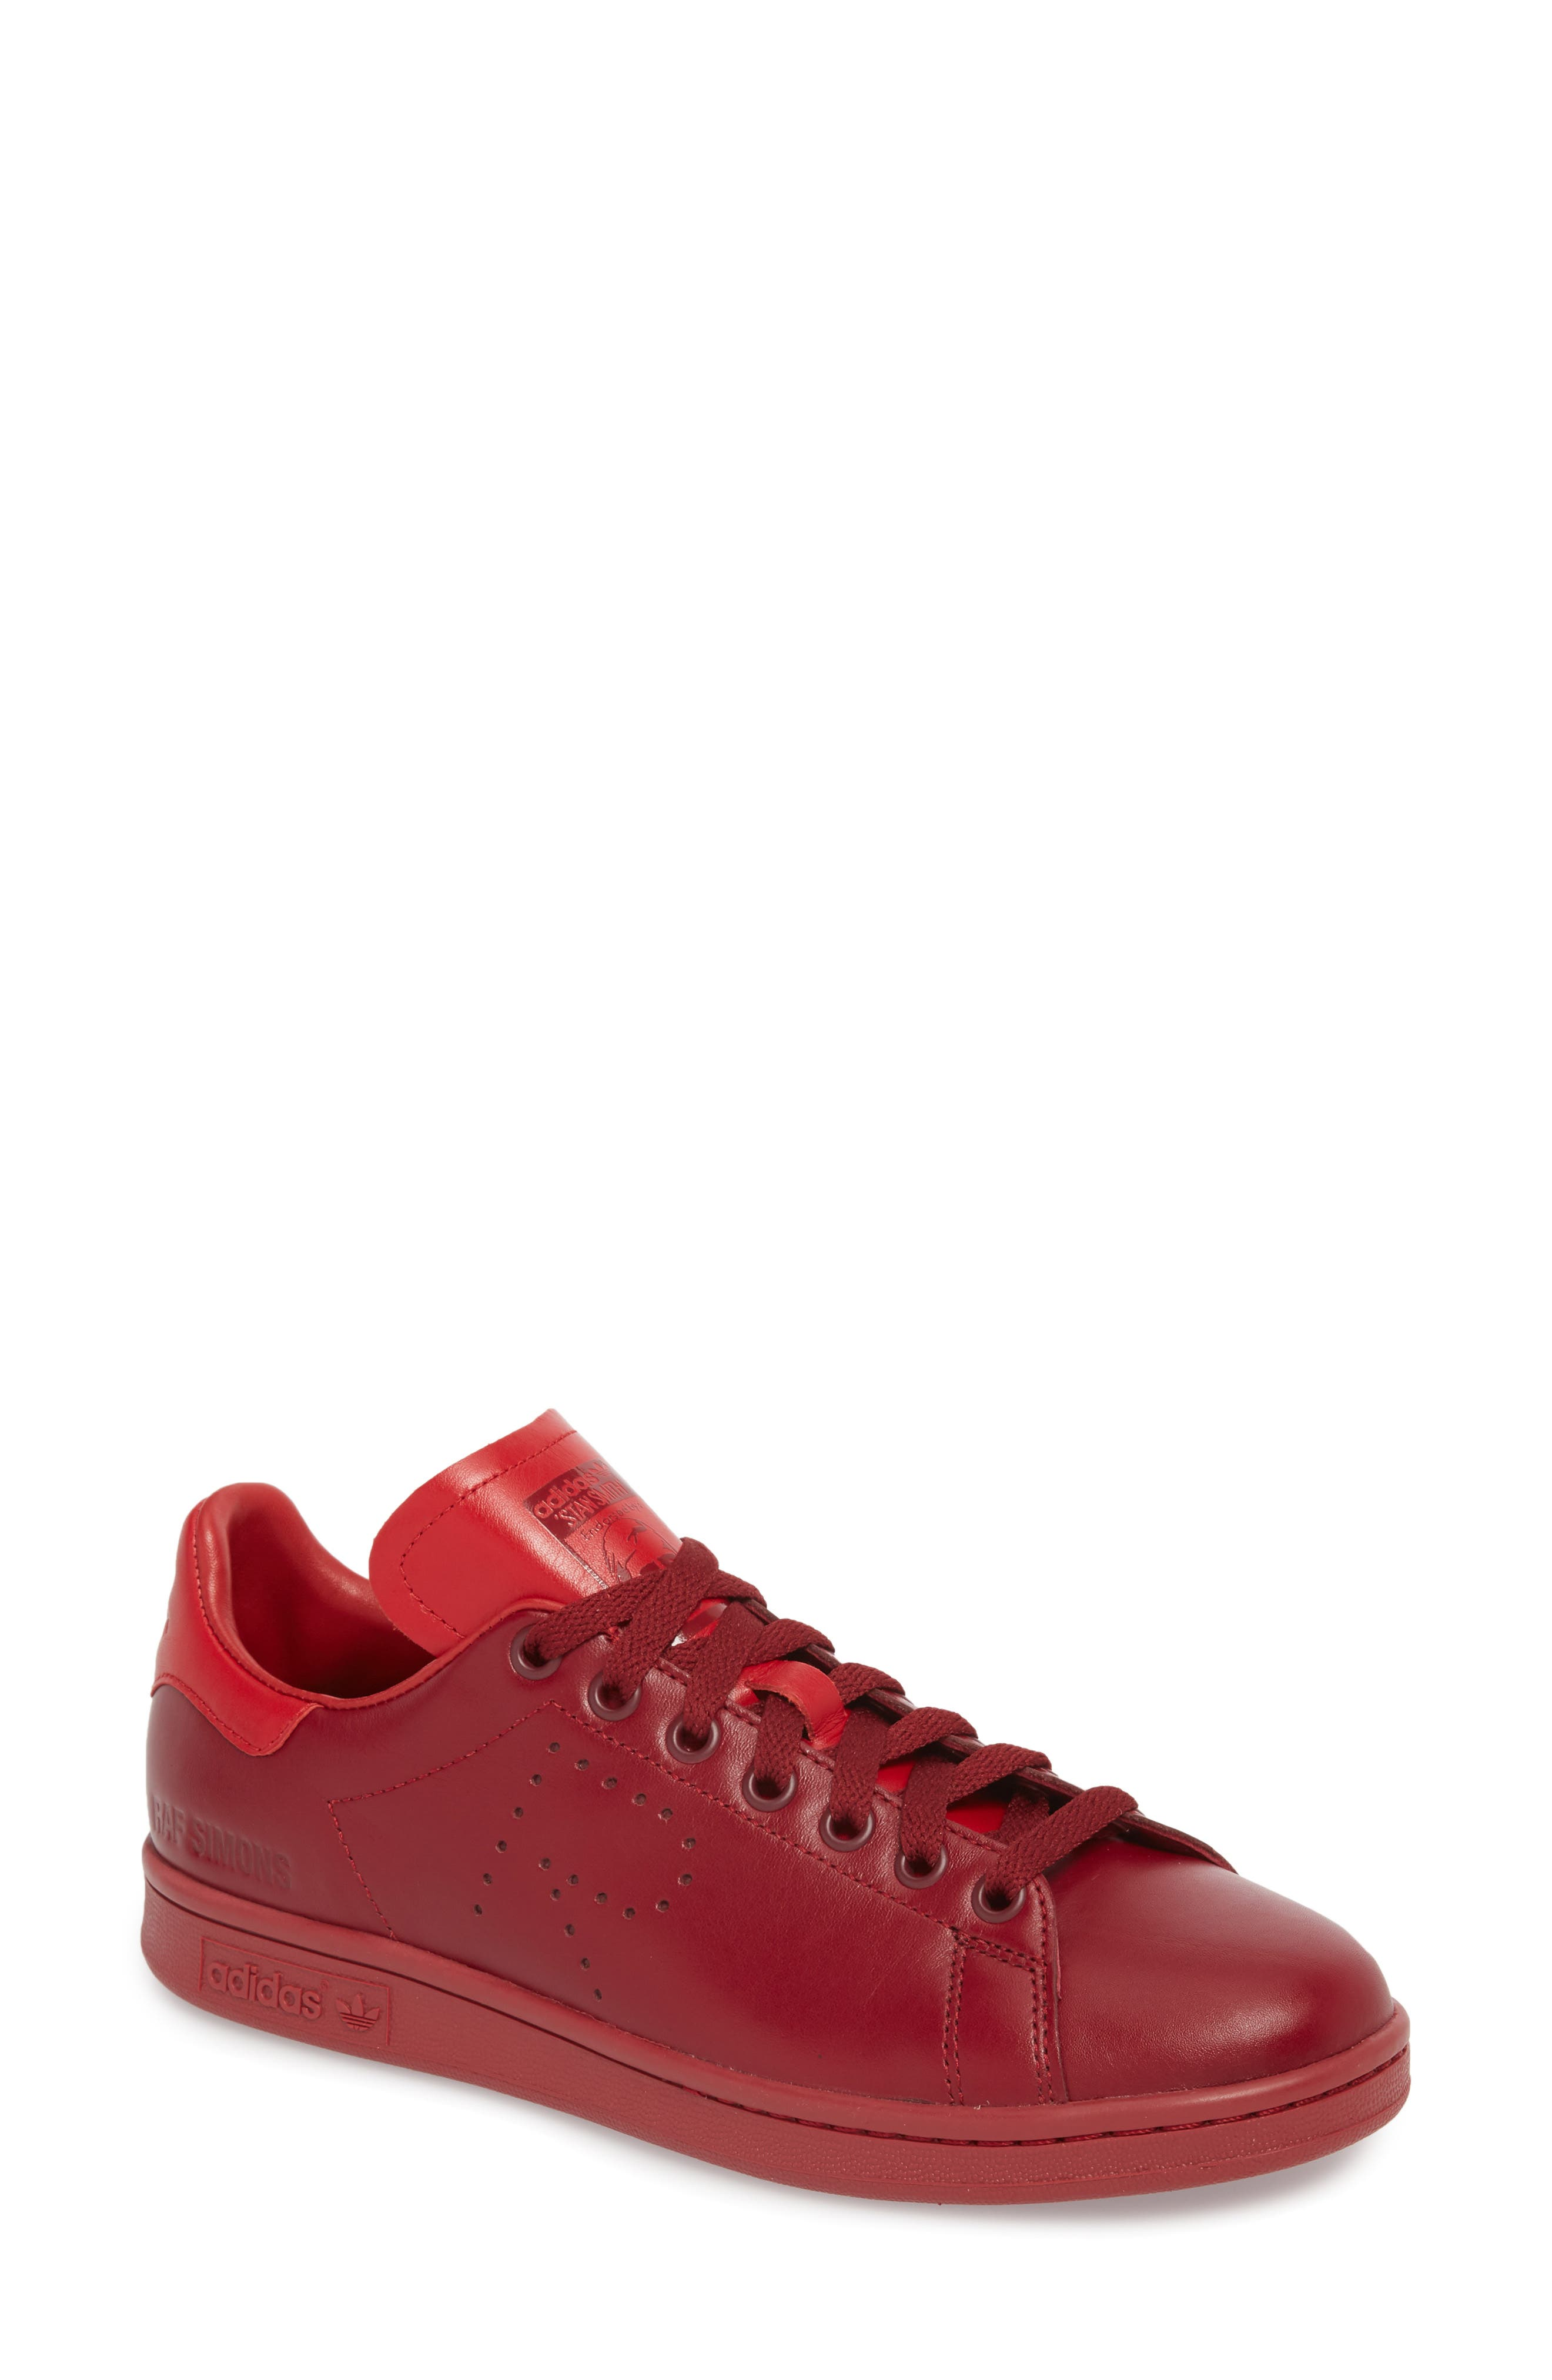 Stan Smith Sneaker,                         Main,                         color, Burgundy/ Power Red/ Burgundy